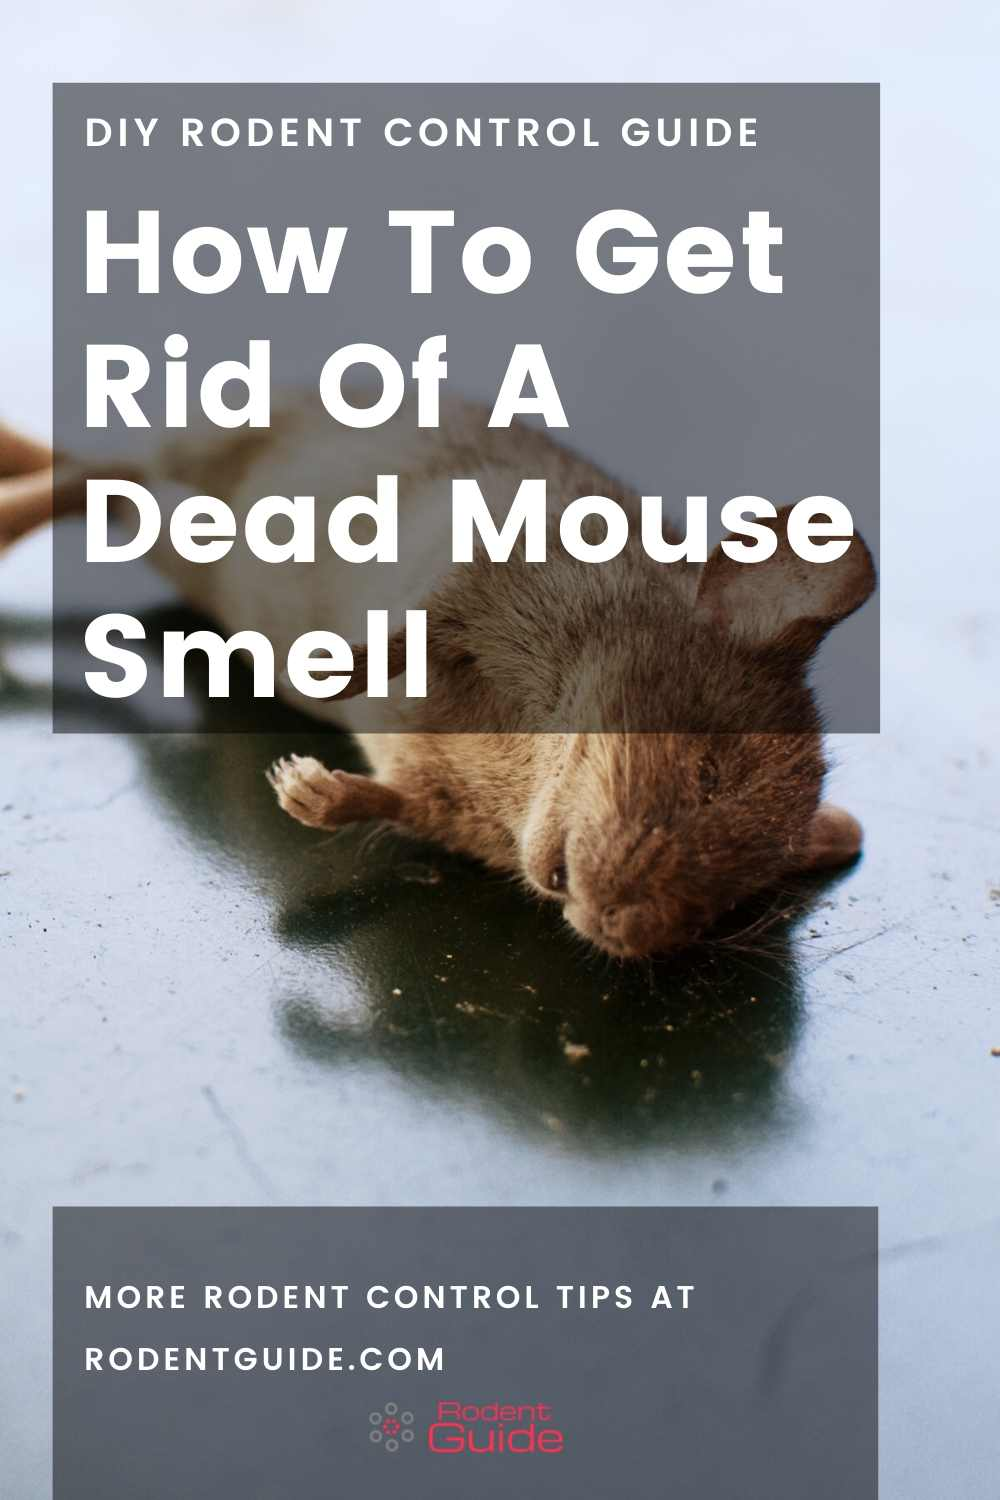 How To Get Rid Of A Dead Mouse Smell